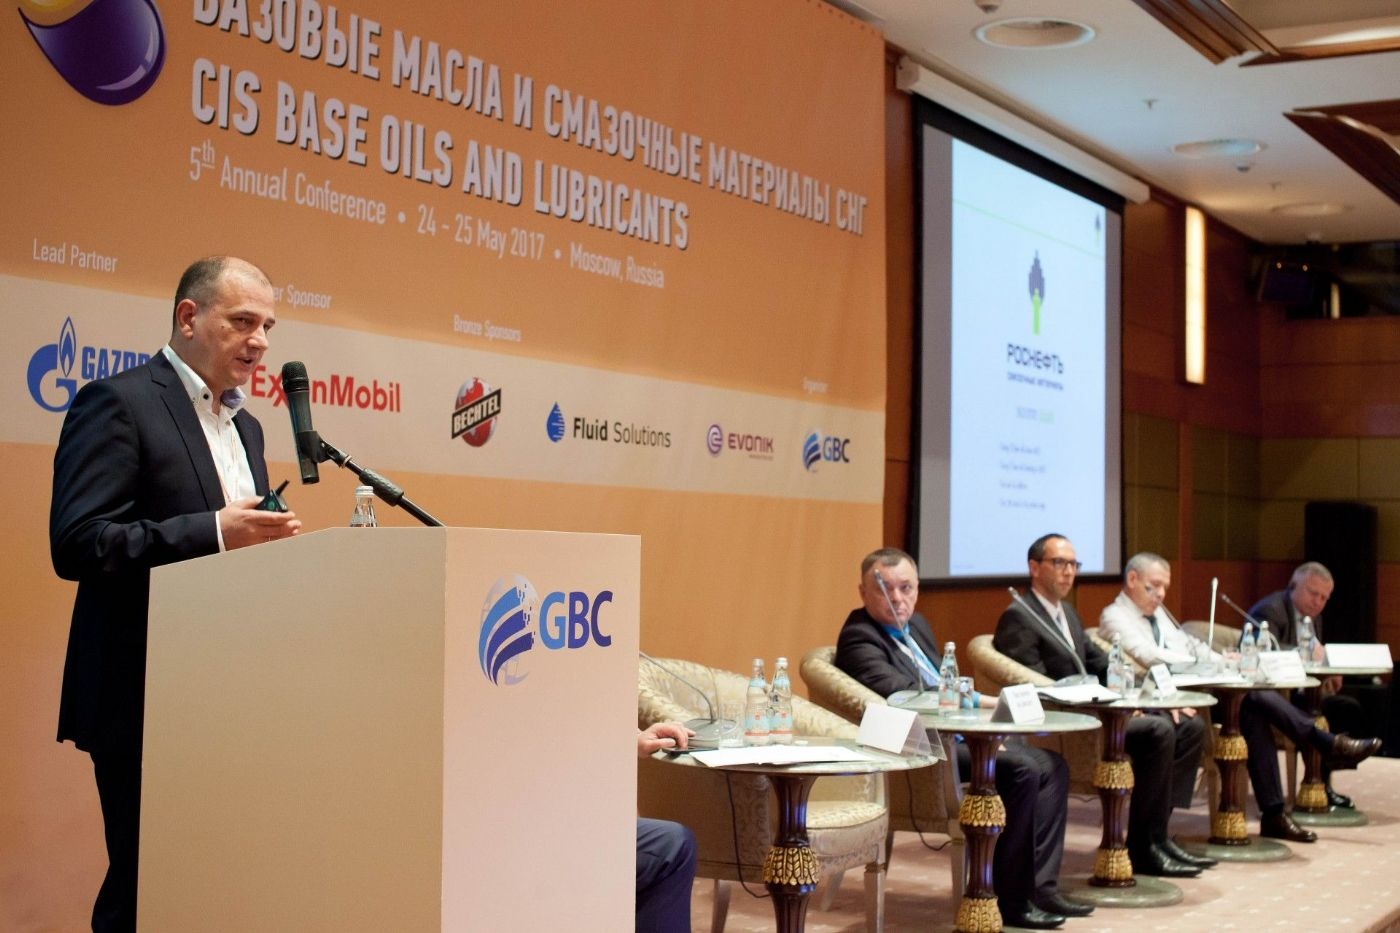 The largest base oil and lubricants conference in Russia will be held in Moscow